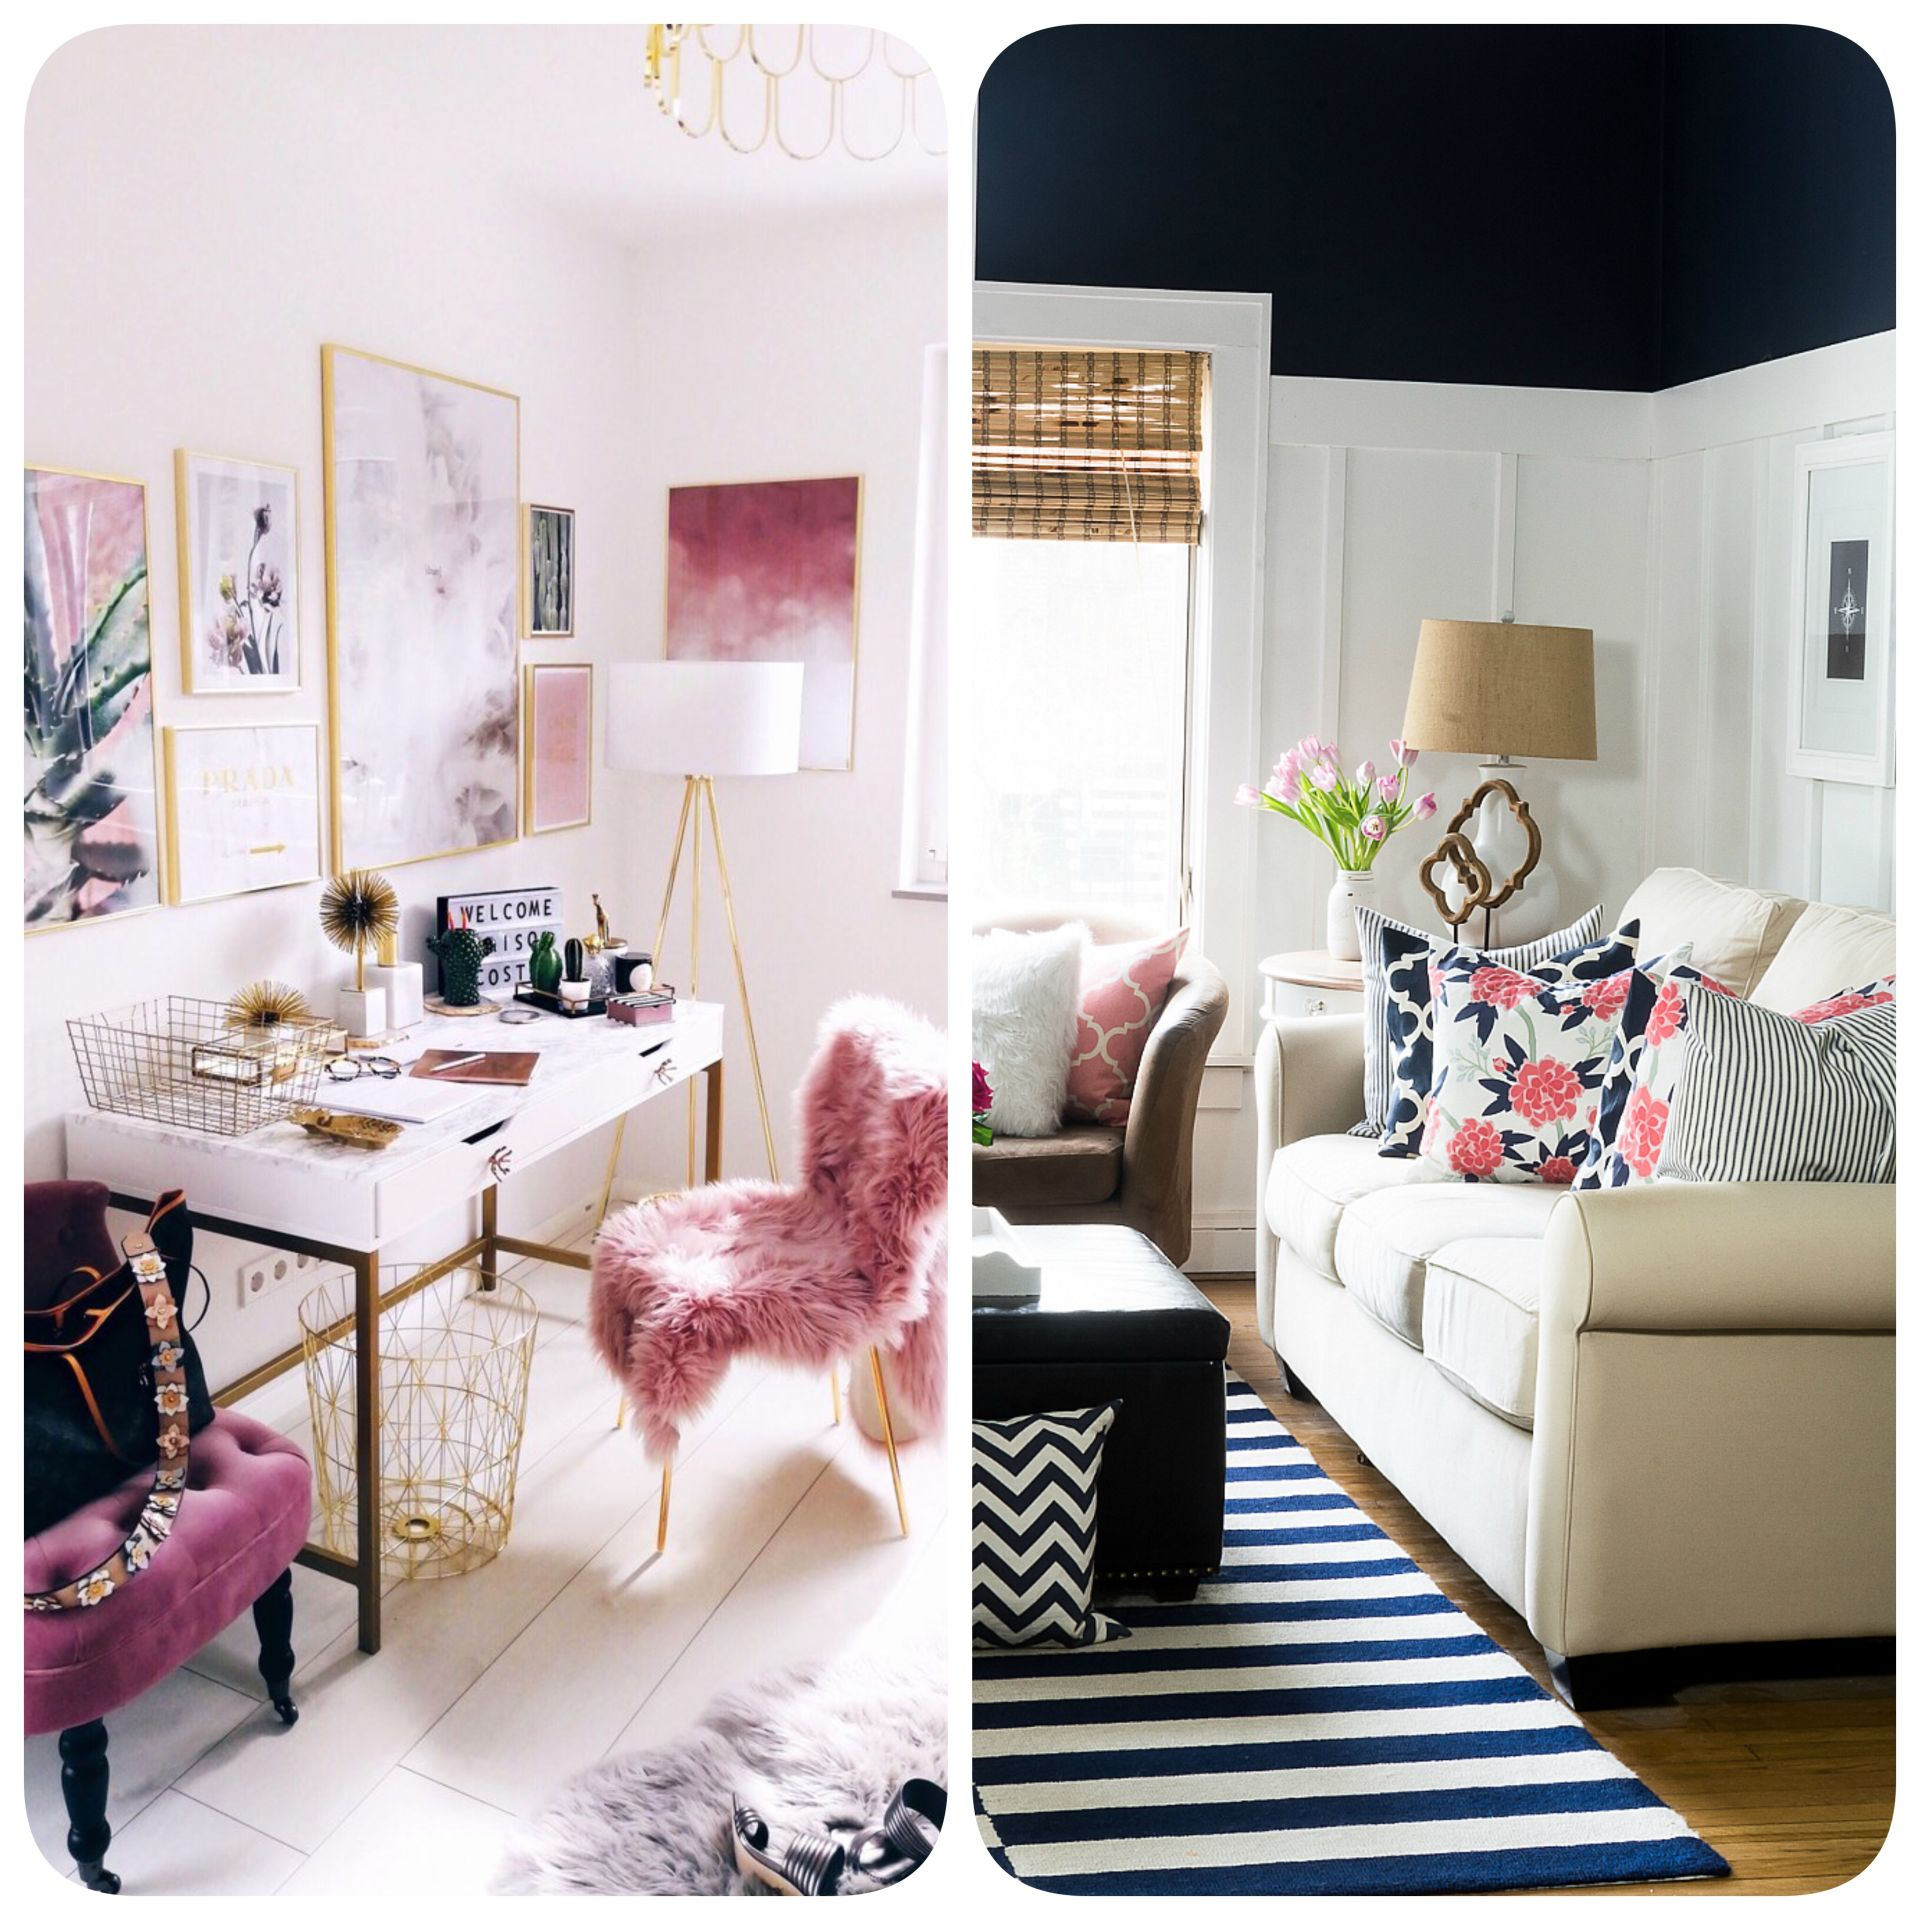 Home + Design = Your Style & Story